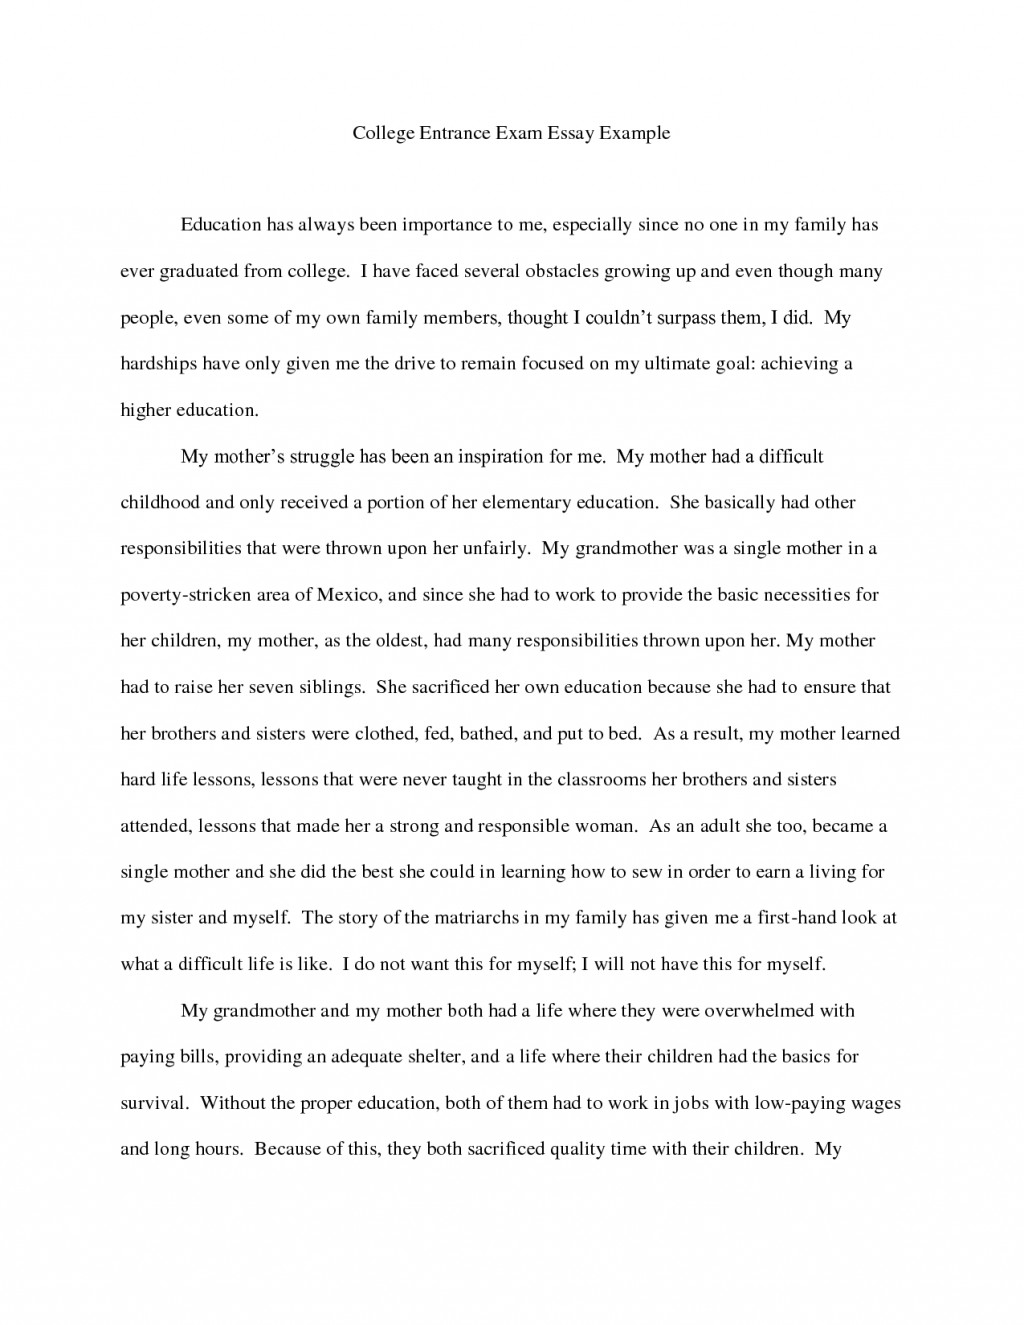 006 College Prompt Essays Samples 130950 Unique Essay Examples 1 Application Prompts Large